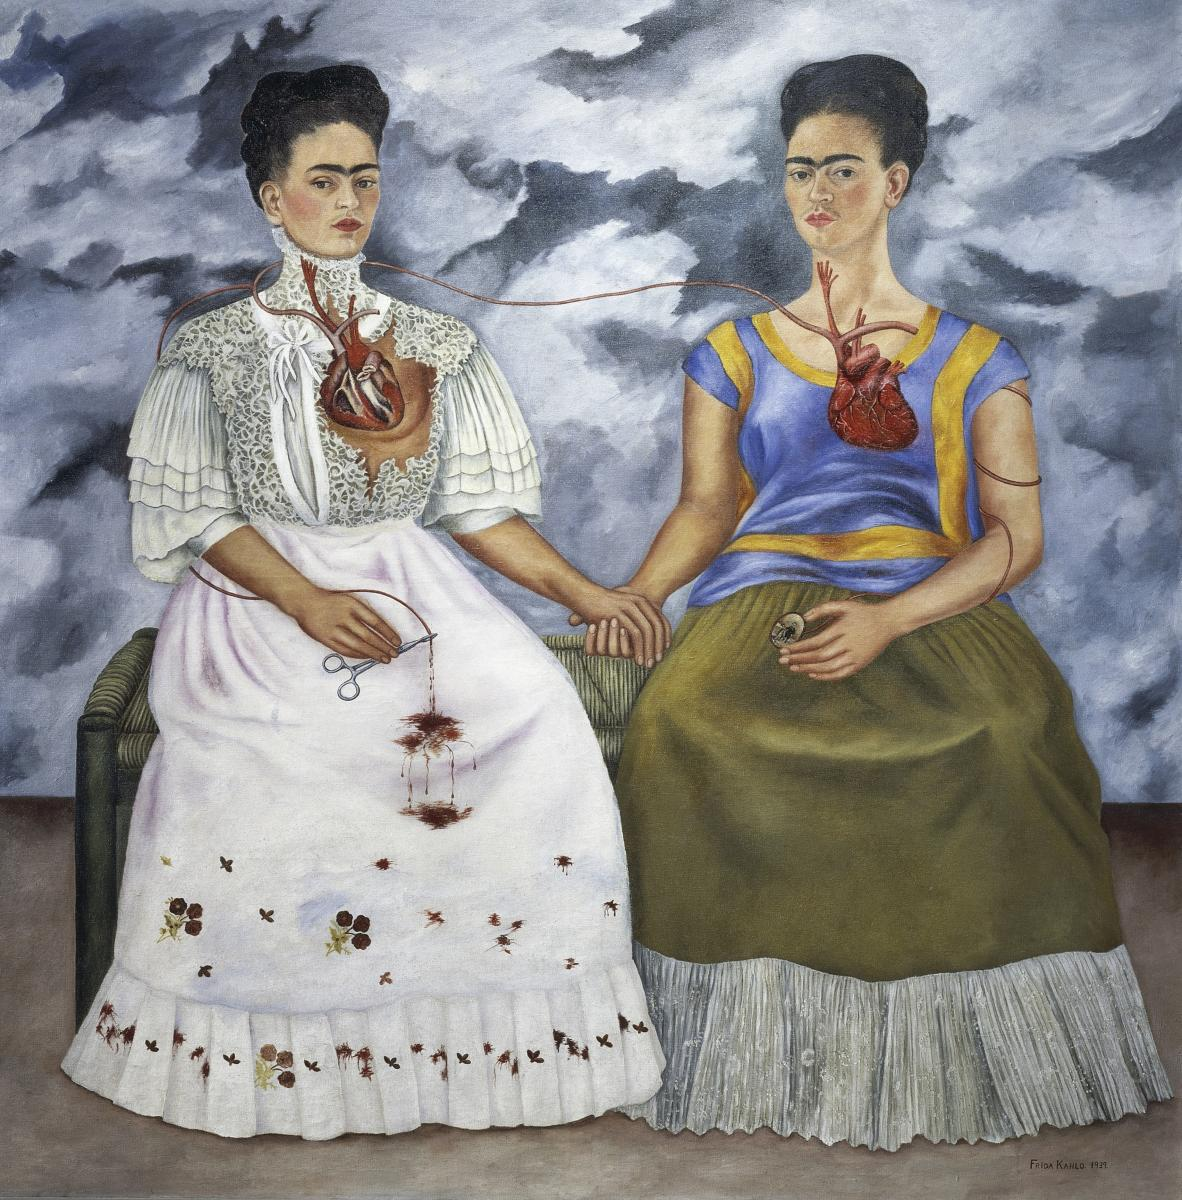 The Two Fridas, 1939